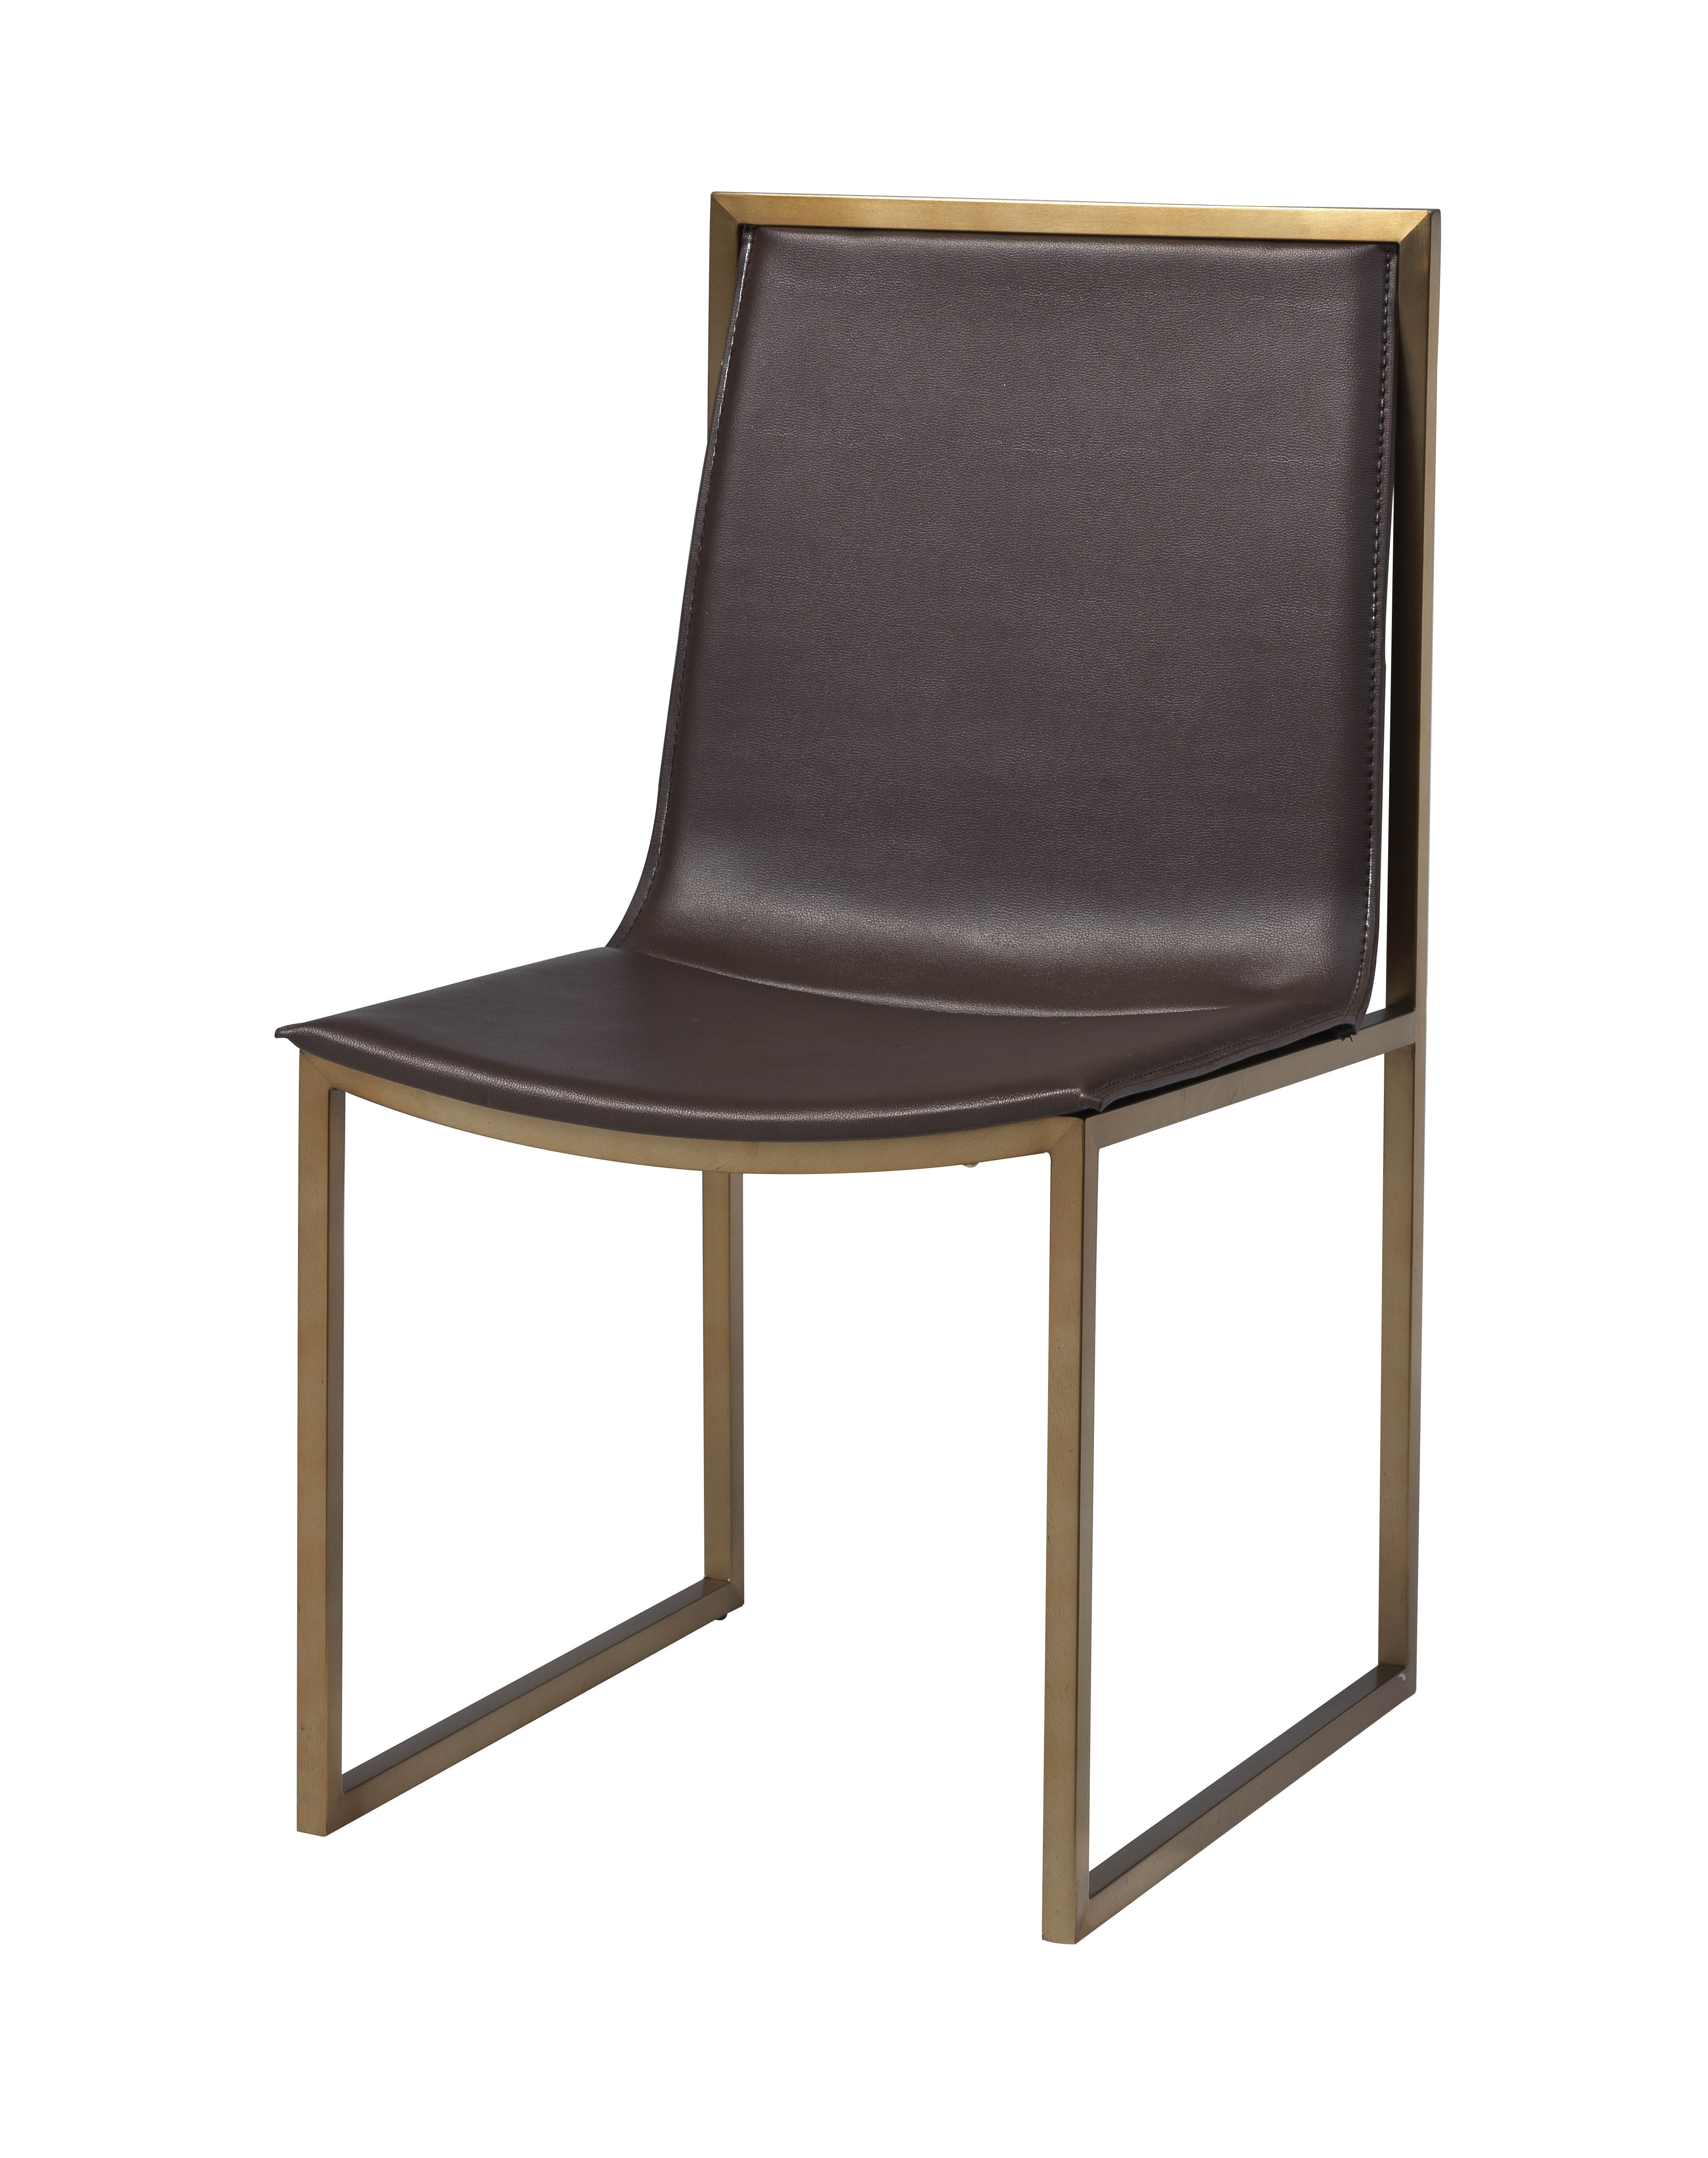 Coast midas gold brown pvc dining chairs click to enlarge